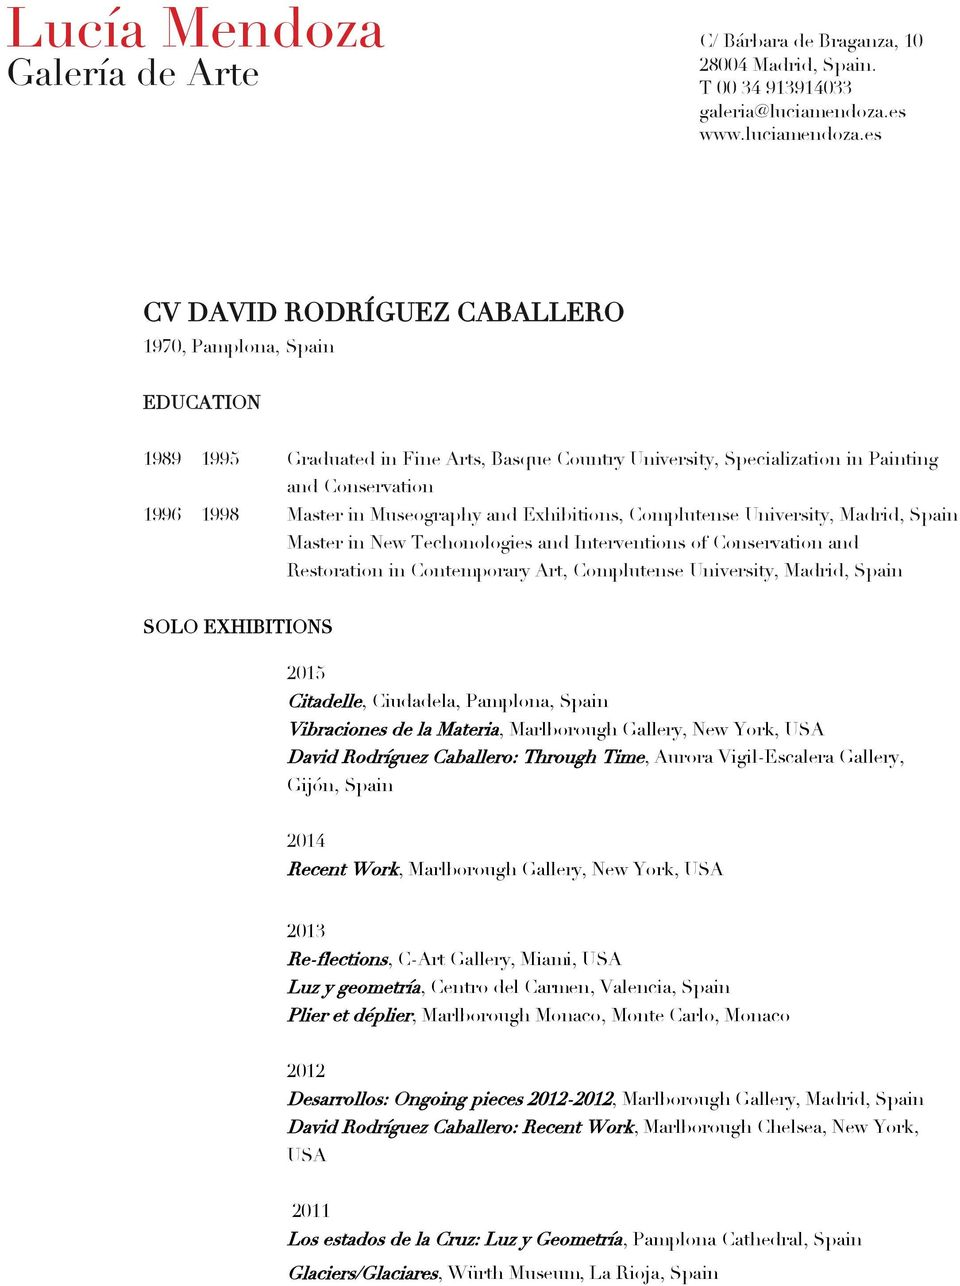 es CV DAVID RODRÍGUEZ CABALLERO 1970, Pamplona, Spain EDUCATION 1989 1995 Graduated in Fine Arts, Basque Country University, Specialization in Painting and Conservation 1996 1998 Master in